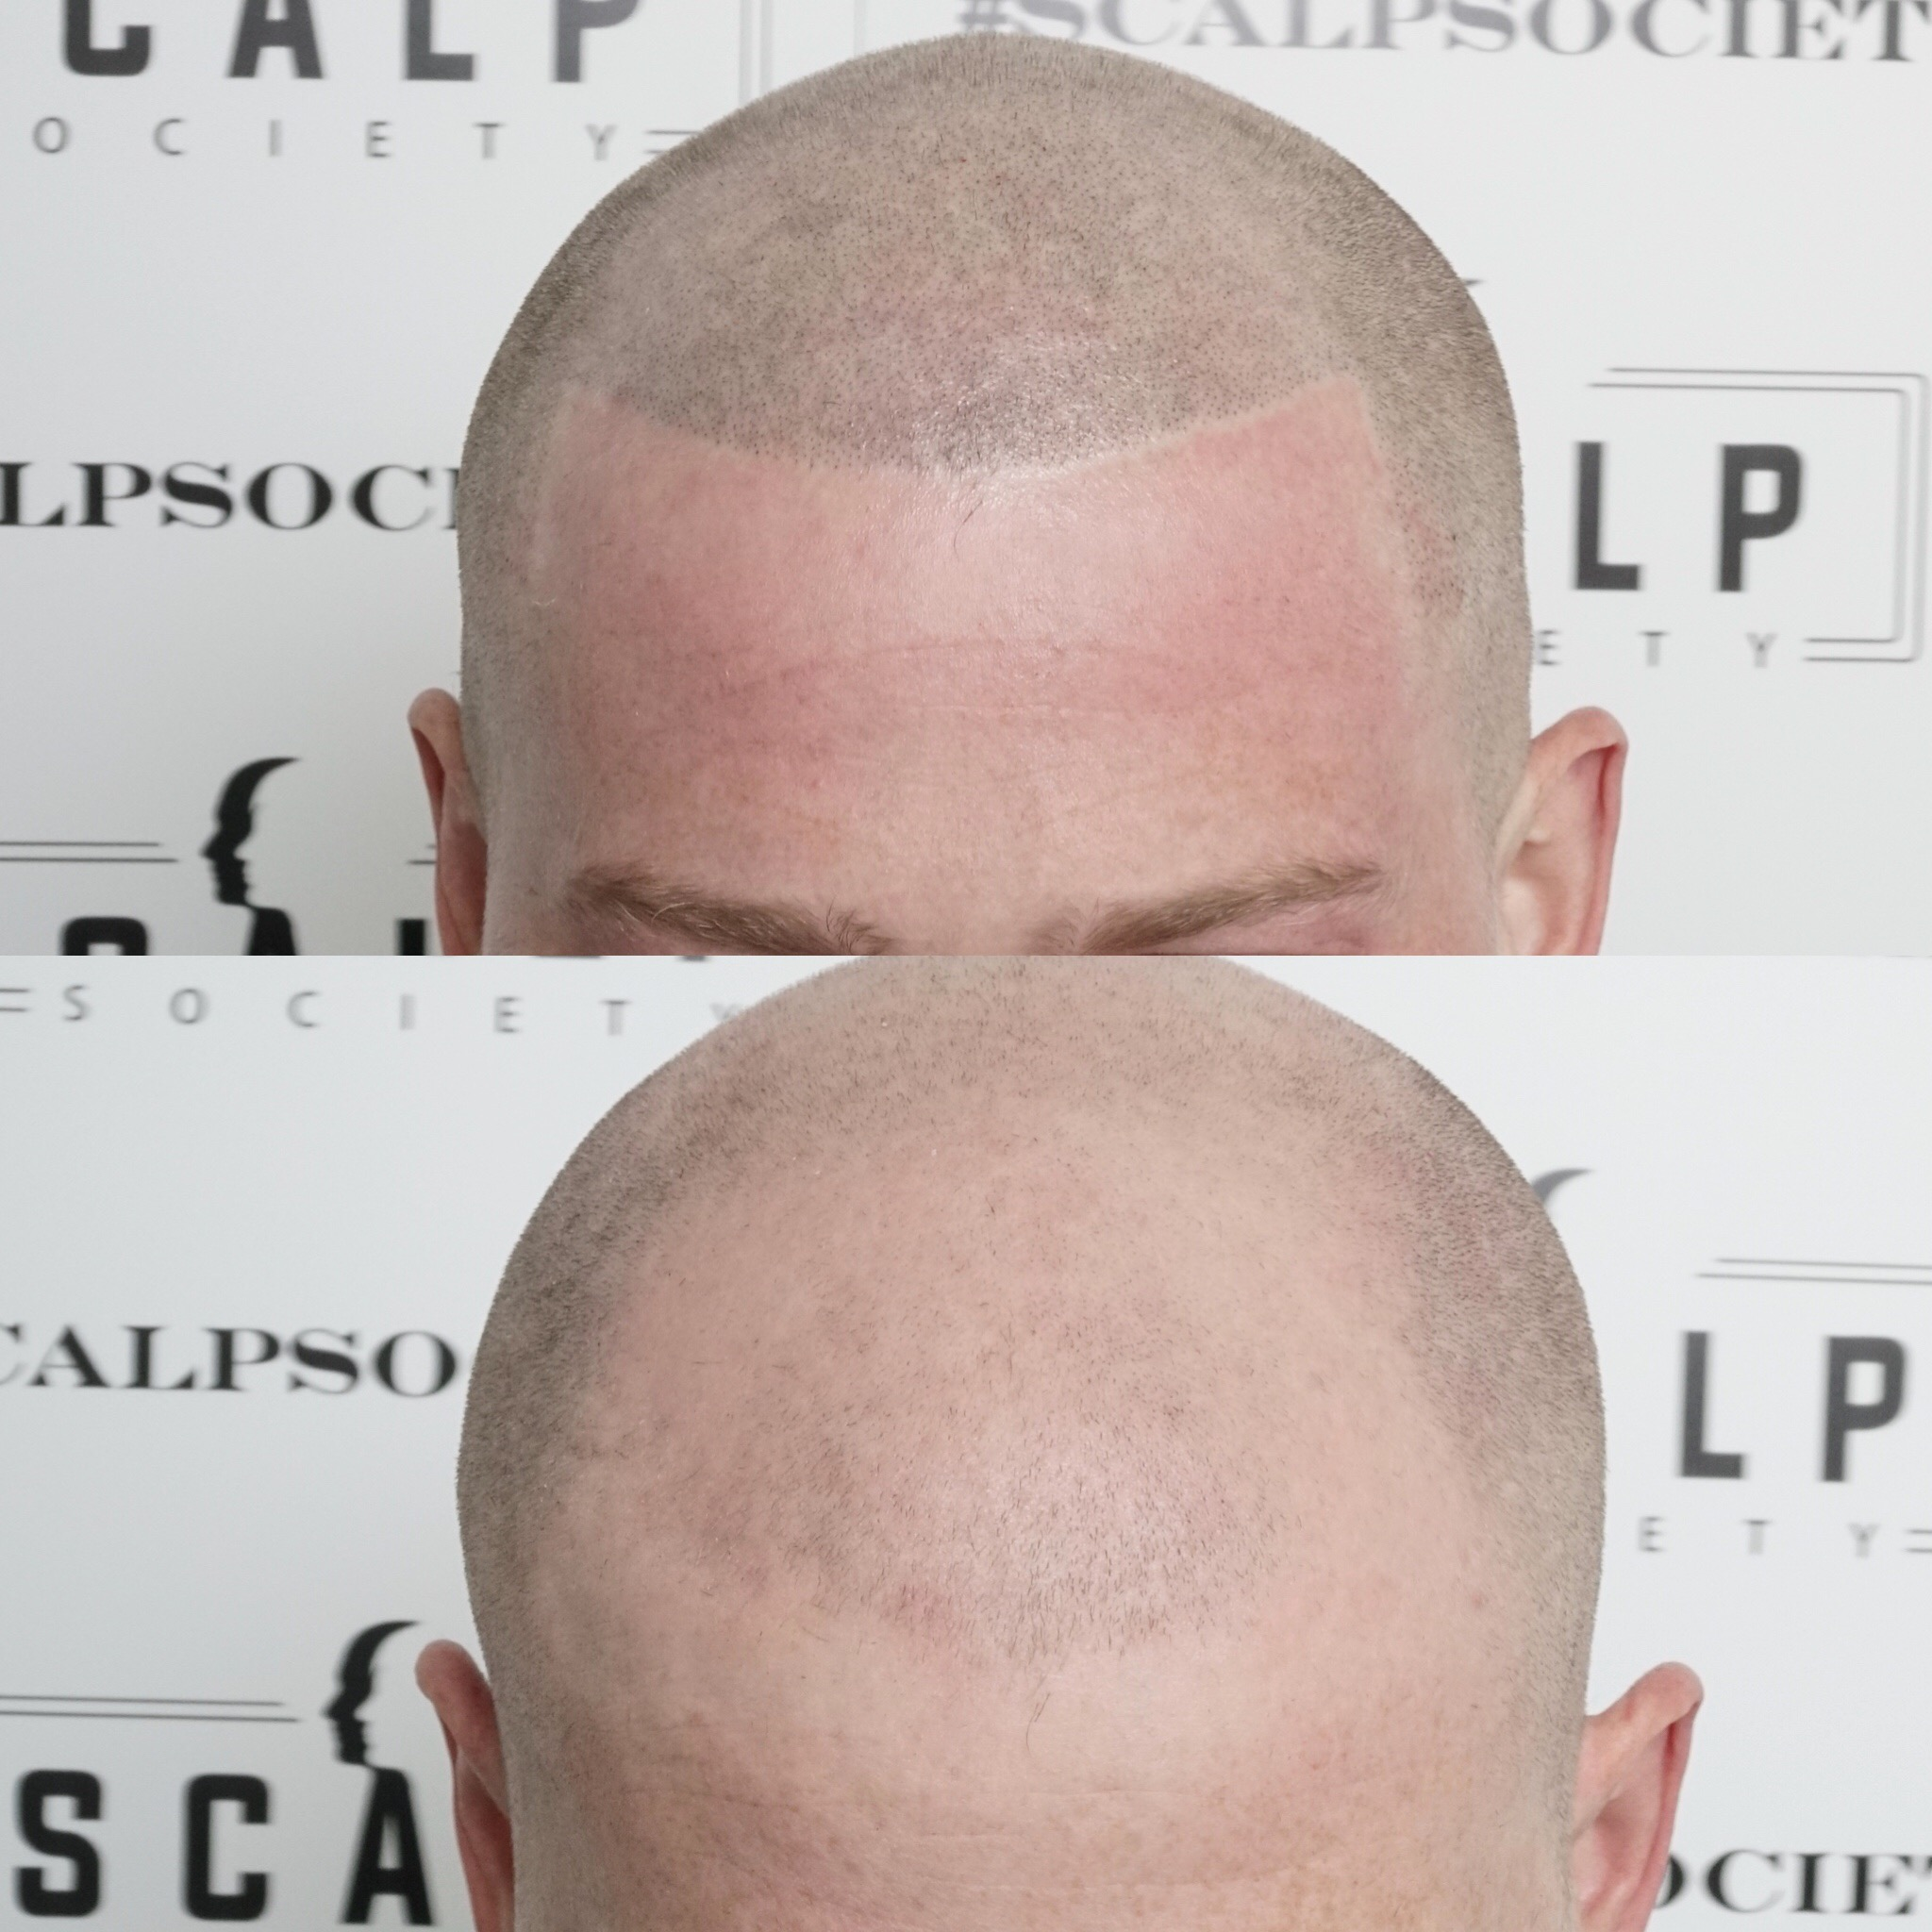 Male 29. Had a receding hairline and loss hair all the way to Norwood 7. Barbershop edged up line per clients request. Our lines are clean, straight and precise. Micropigmentation is an art and skill that is perfected through time and practice.